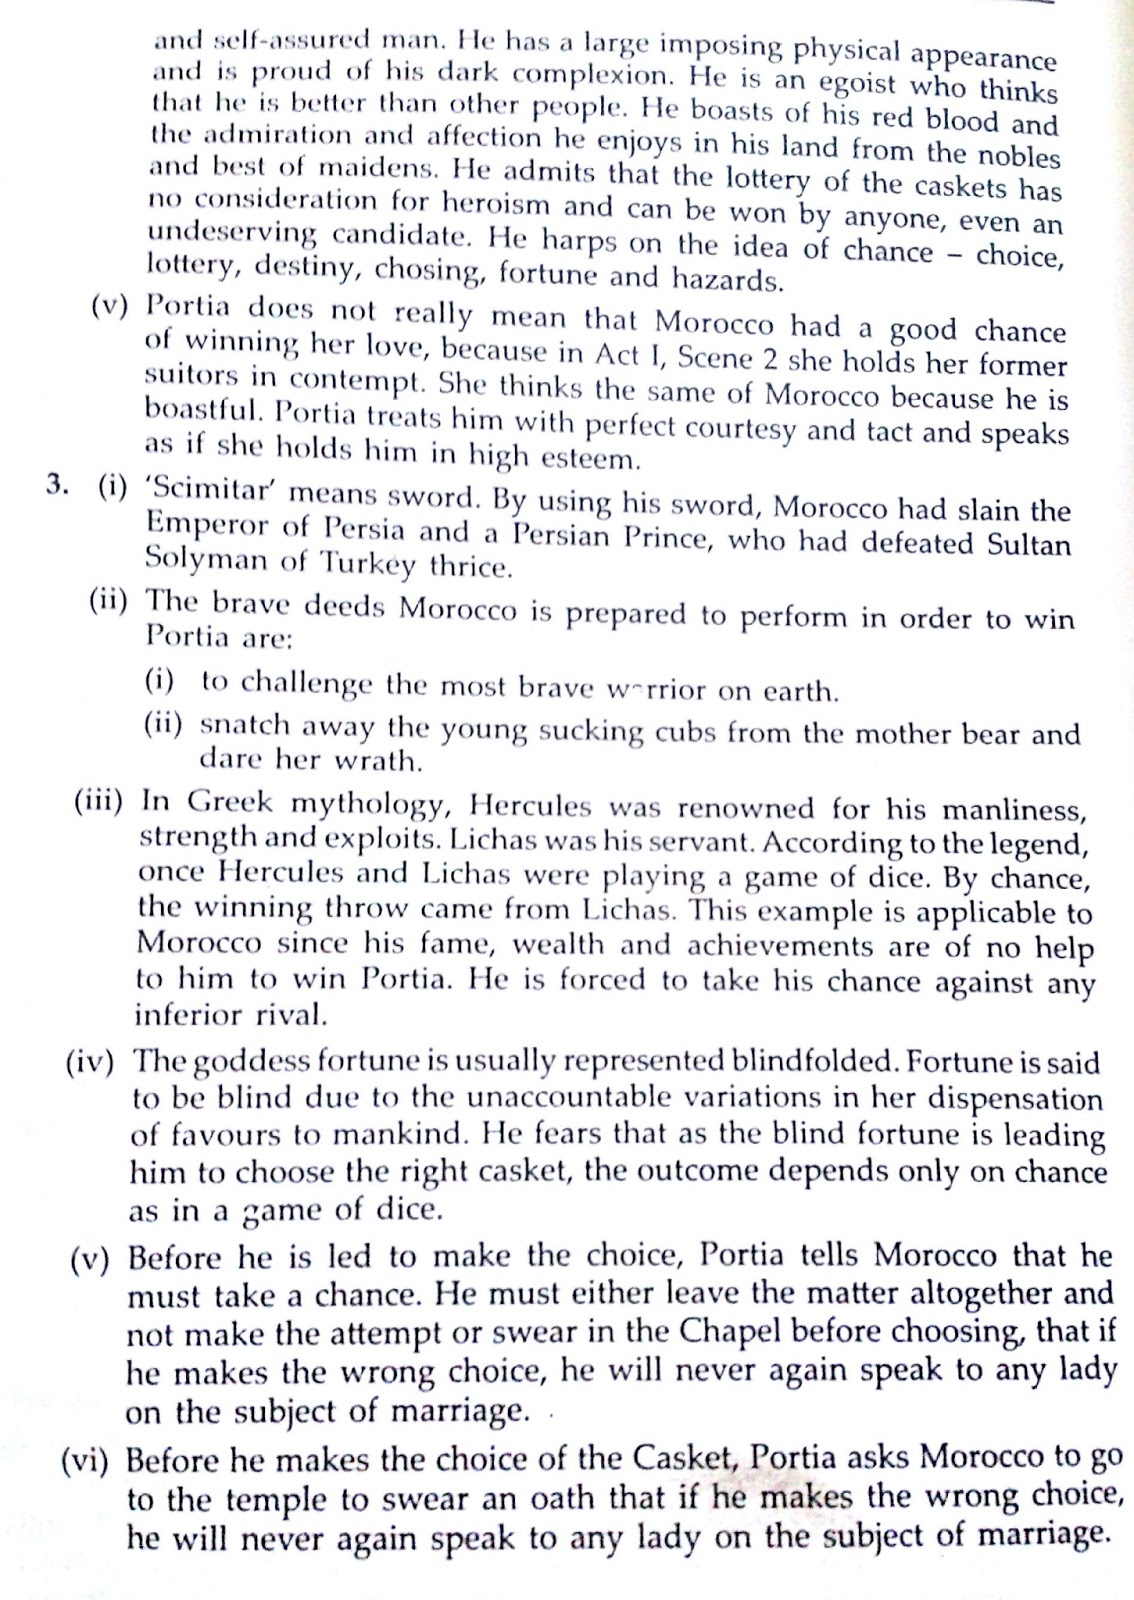 Workbook Answers/ Solutions of The Merchant of Venice, Act 2 Scene 1